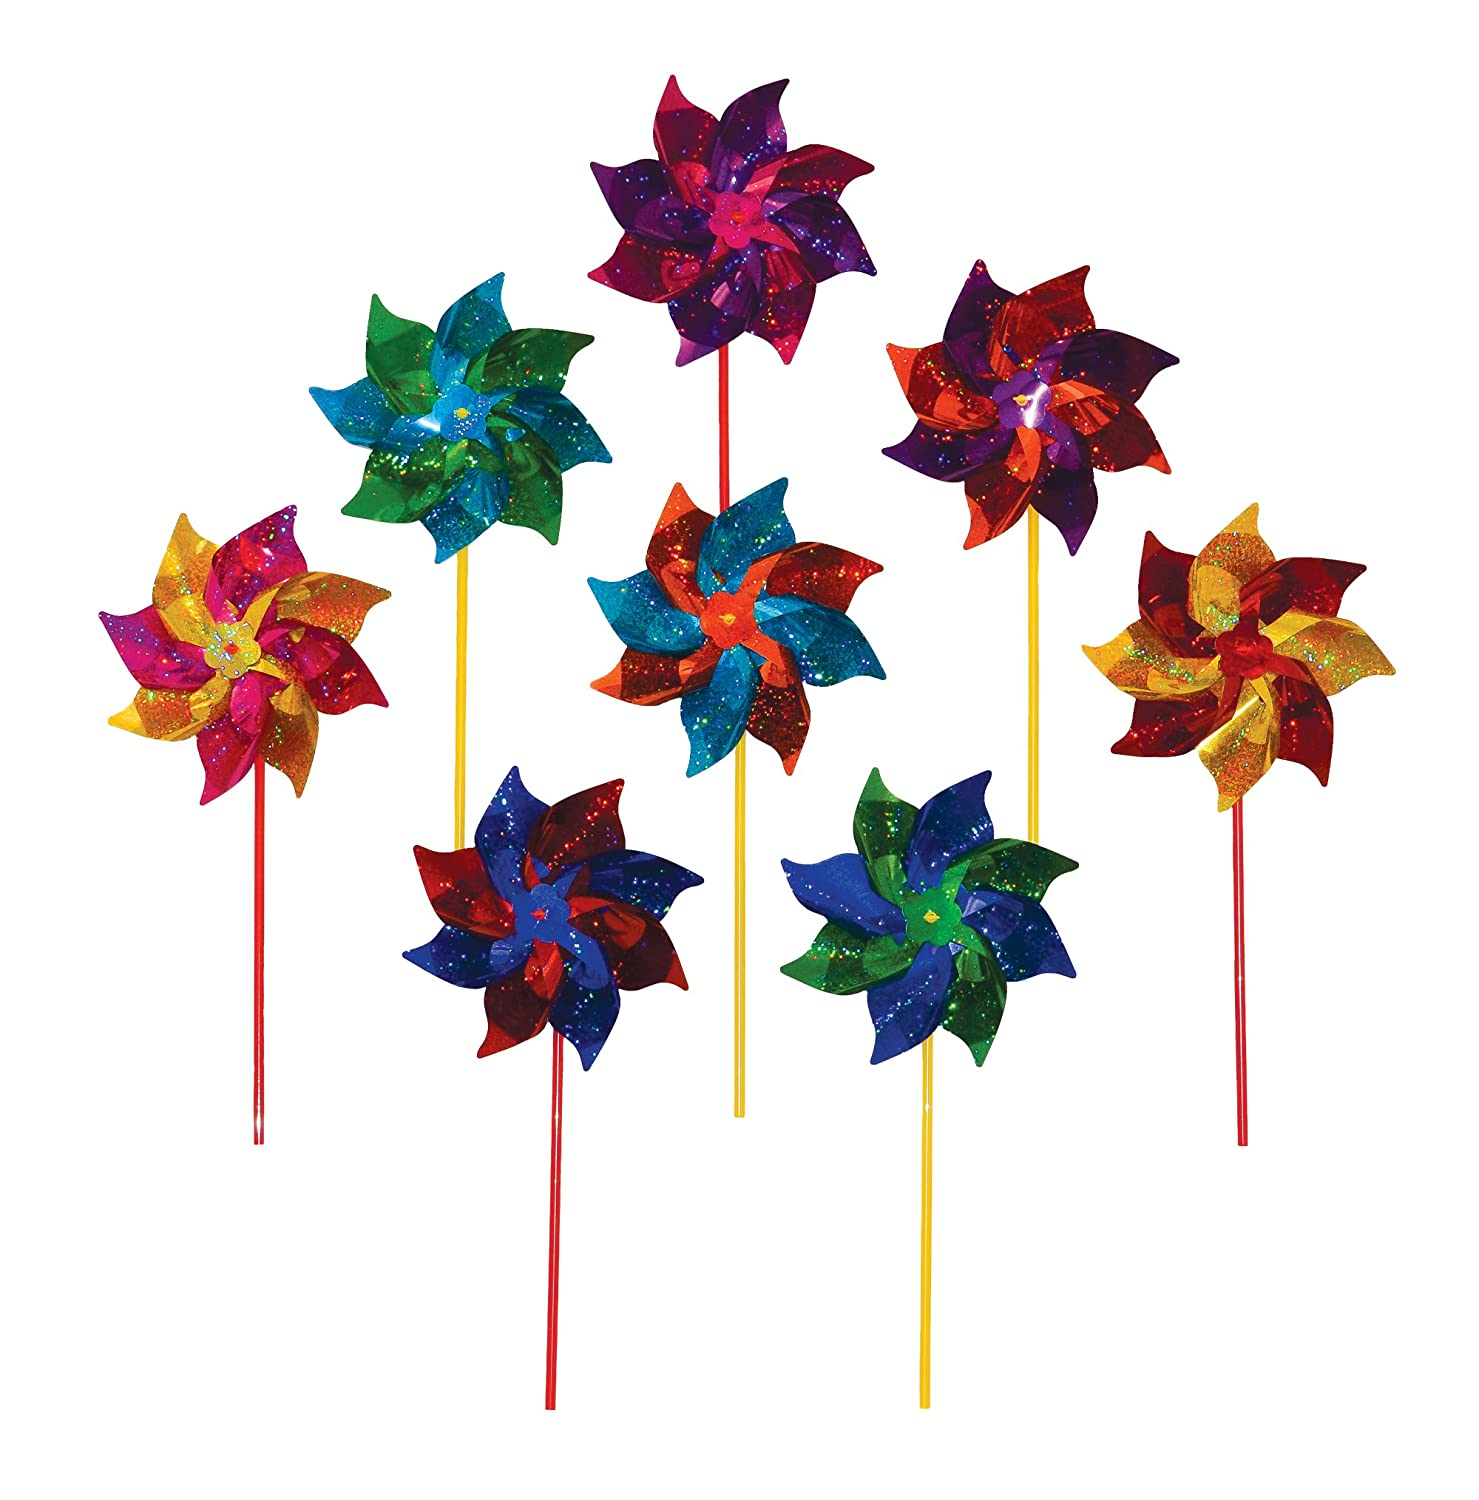 Pinwheel Wind Spinner Garden Outdoor Yard Decor Colorful Home Art Rainbow Stake | eBay